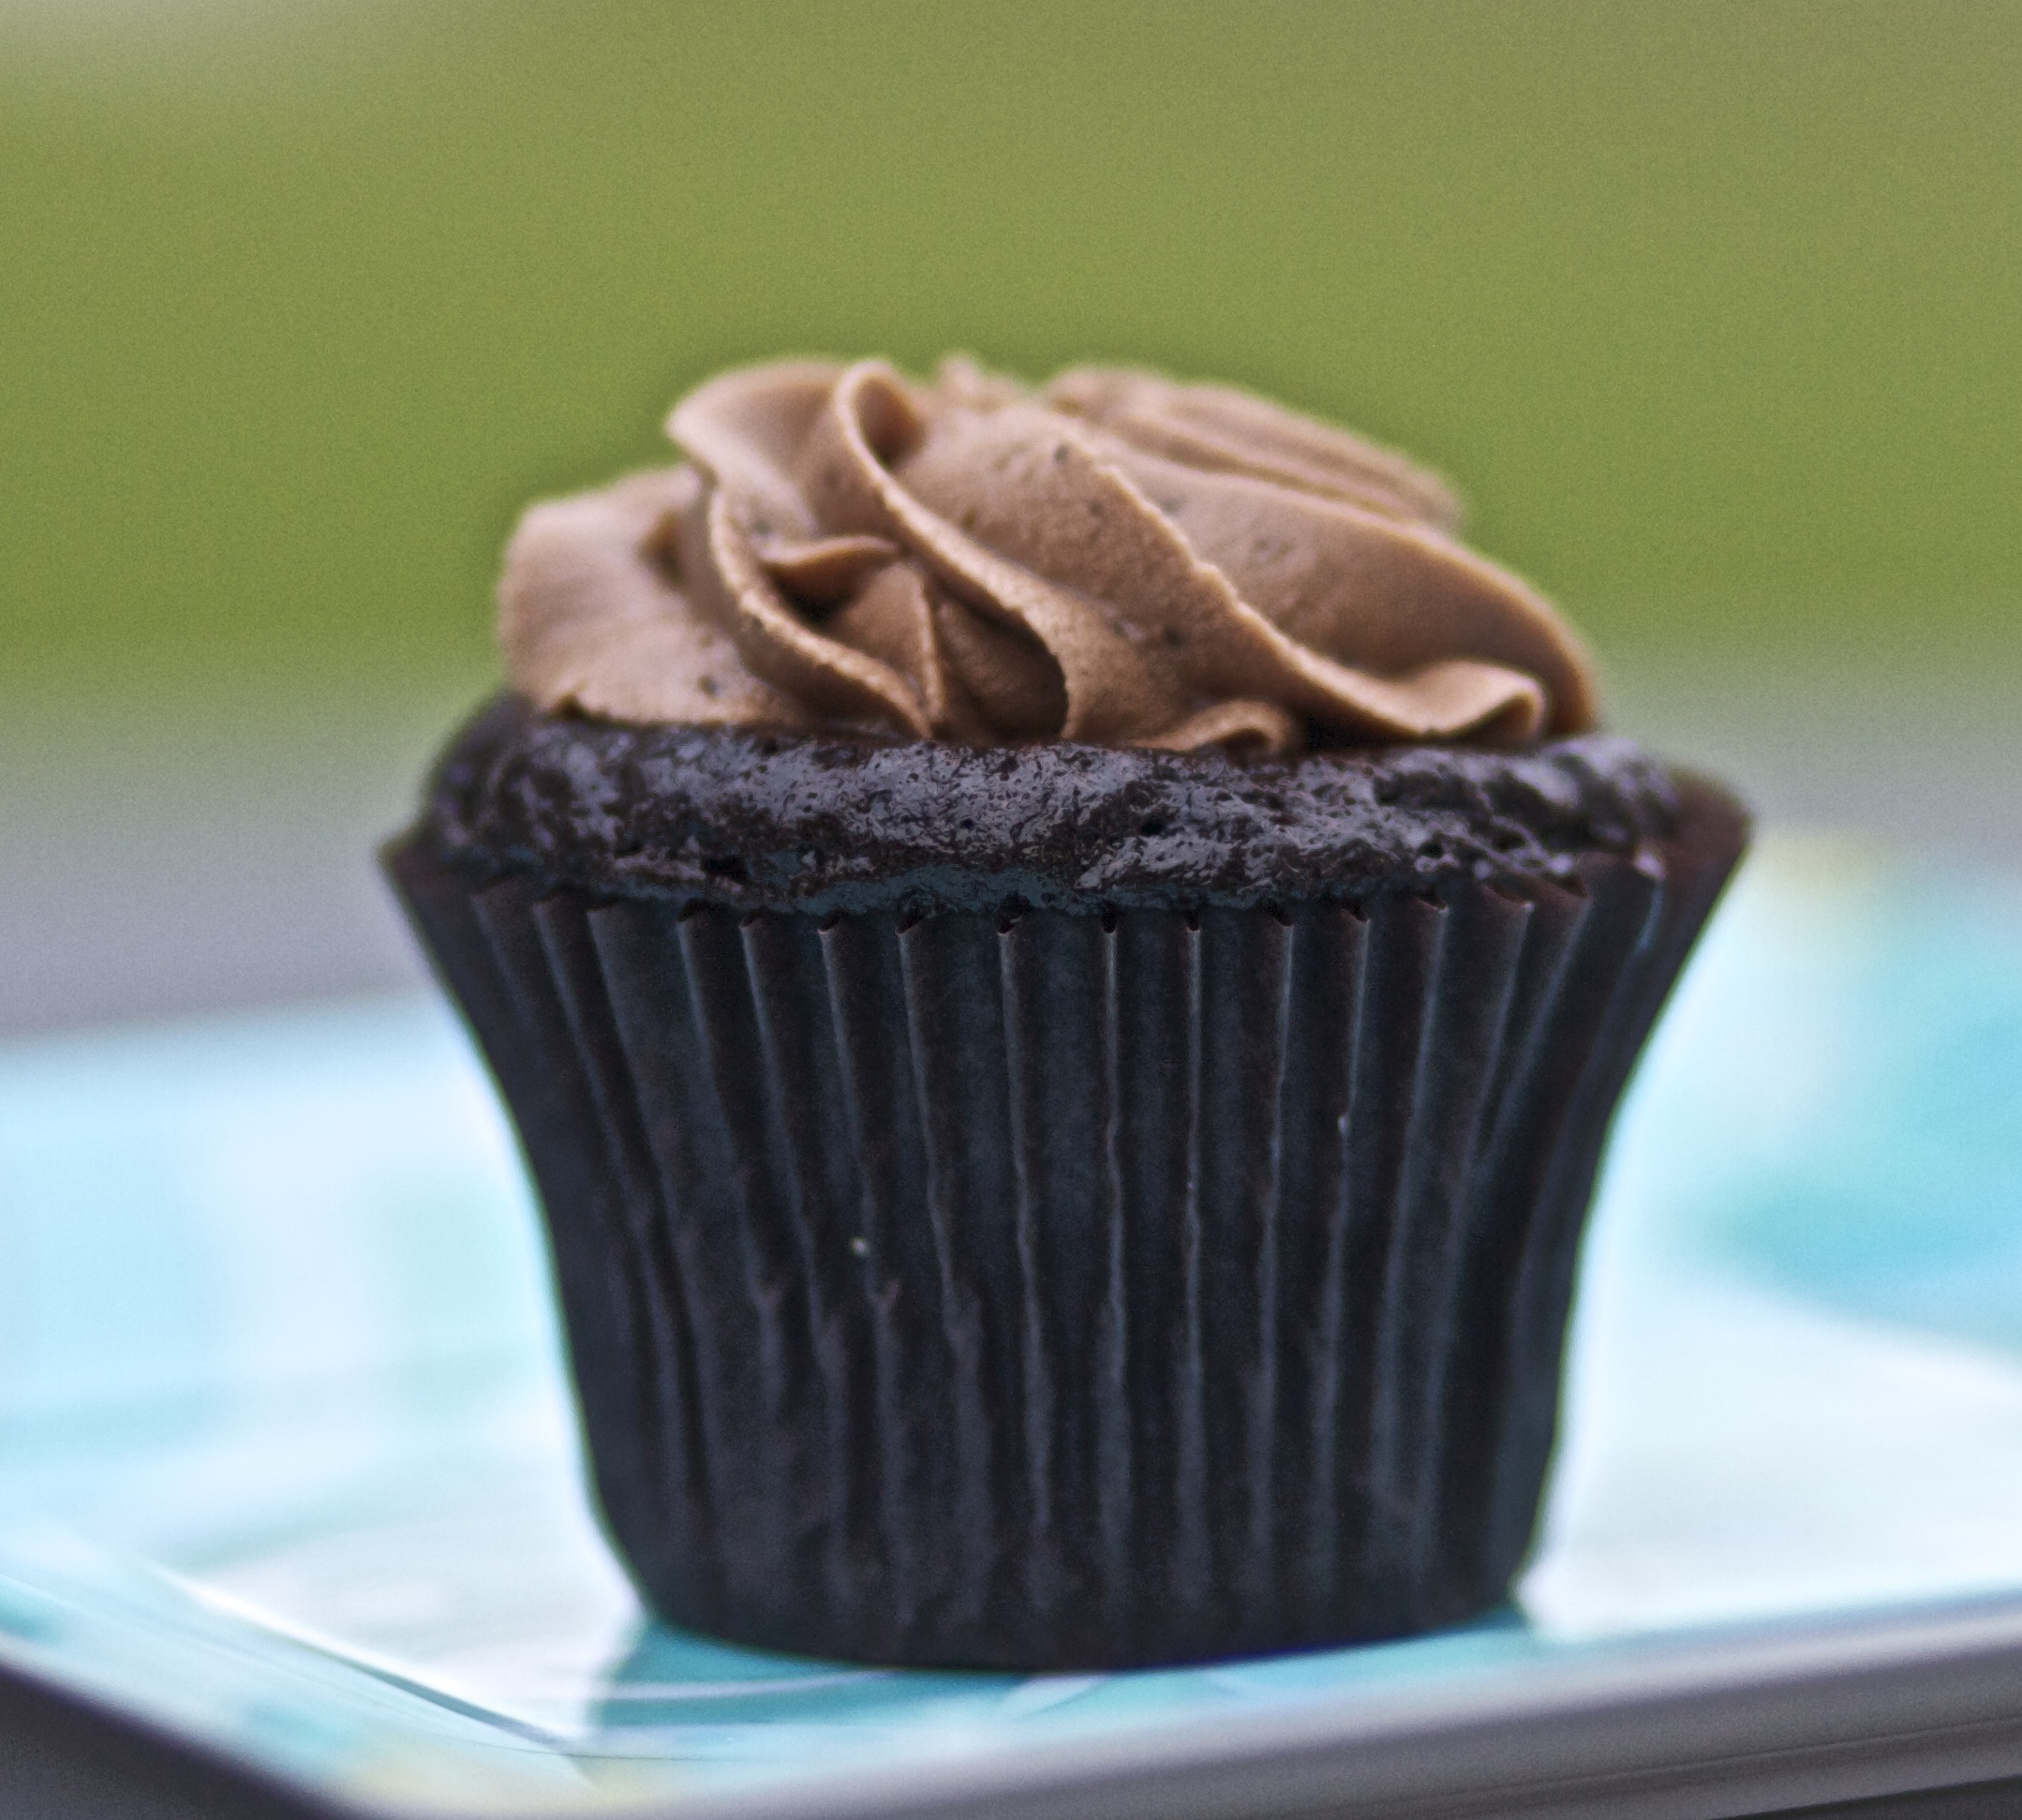 Gluten Free Chocolate Cake/Cupcake      2 cups sugar (I prefer raw)    1 ¾ cups Auntie's GF flour    ¾ cup cocoa    1 ½ tsp Baking Powder    1 ½ tsp Baking Soda    1 tsp sea salt    2 large eggs    1 cup coconut milk/rice milk or milk    ½ cup vegetable oil     2 tsp GF vanilla extract    1 cup boiling water      Preheat oven to 350. Prepare baking dishes      Combine dry ingredients in mixer. In a separate bowl, put all wet ingredients together and mix (except boiling water) Mix drys and wets together. Make sure not to over mix. Add boiling water to batter and mix well. Bake for 30-35 mins.  Makes 24 cupcakes or 2 – 9 inch rounds.